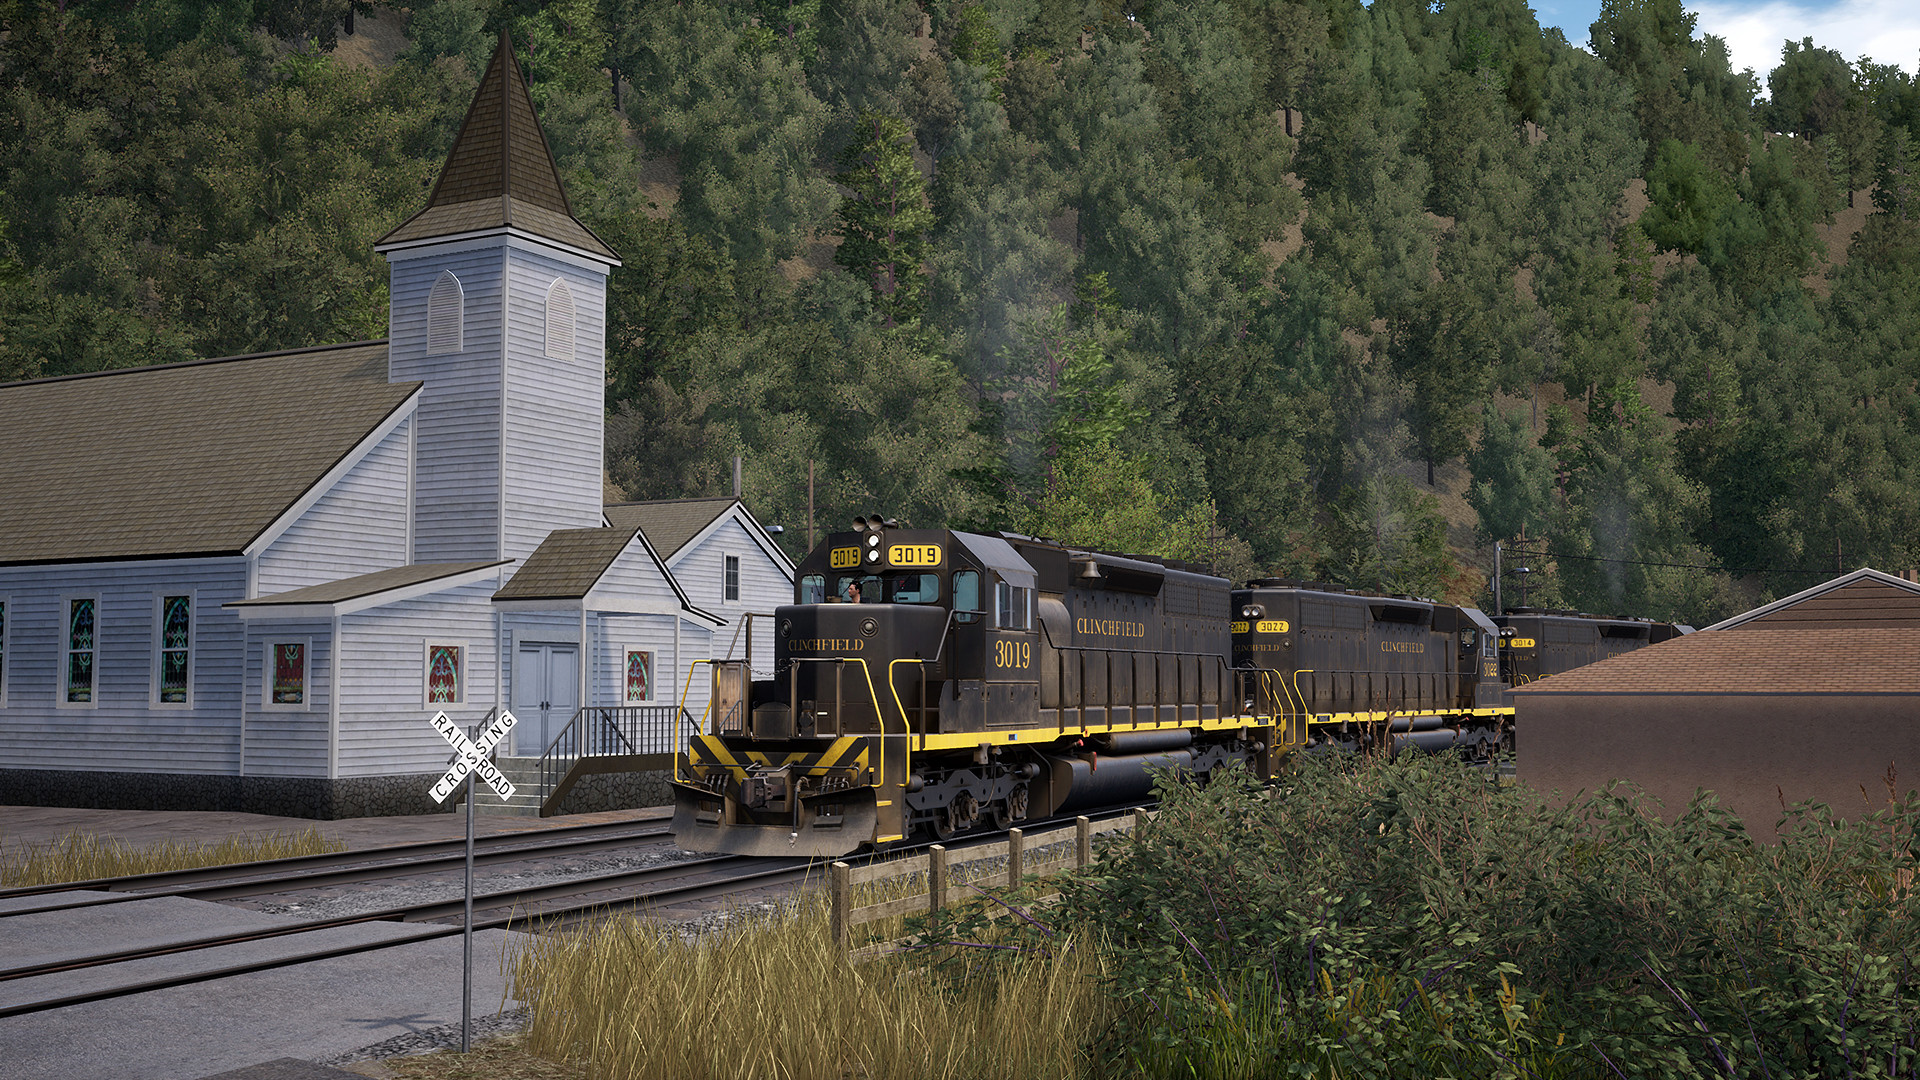 Train Sim World 2: Clinchfield Railroad: Elkhorn - Dante Route Add-On PC Key Fiyatları